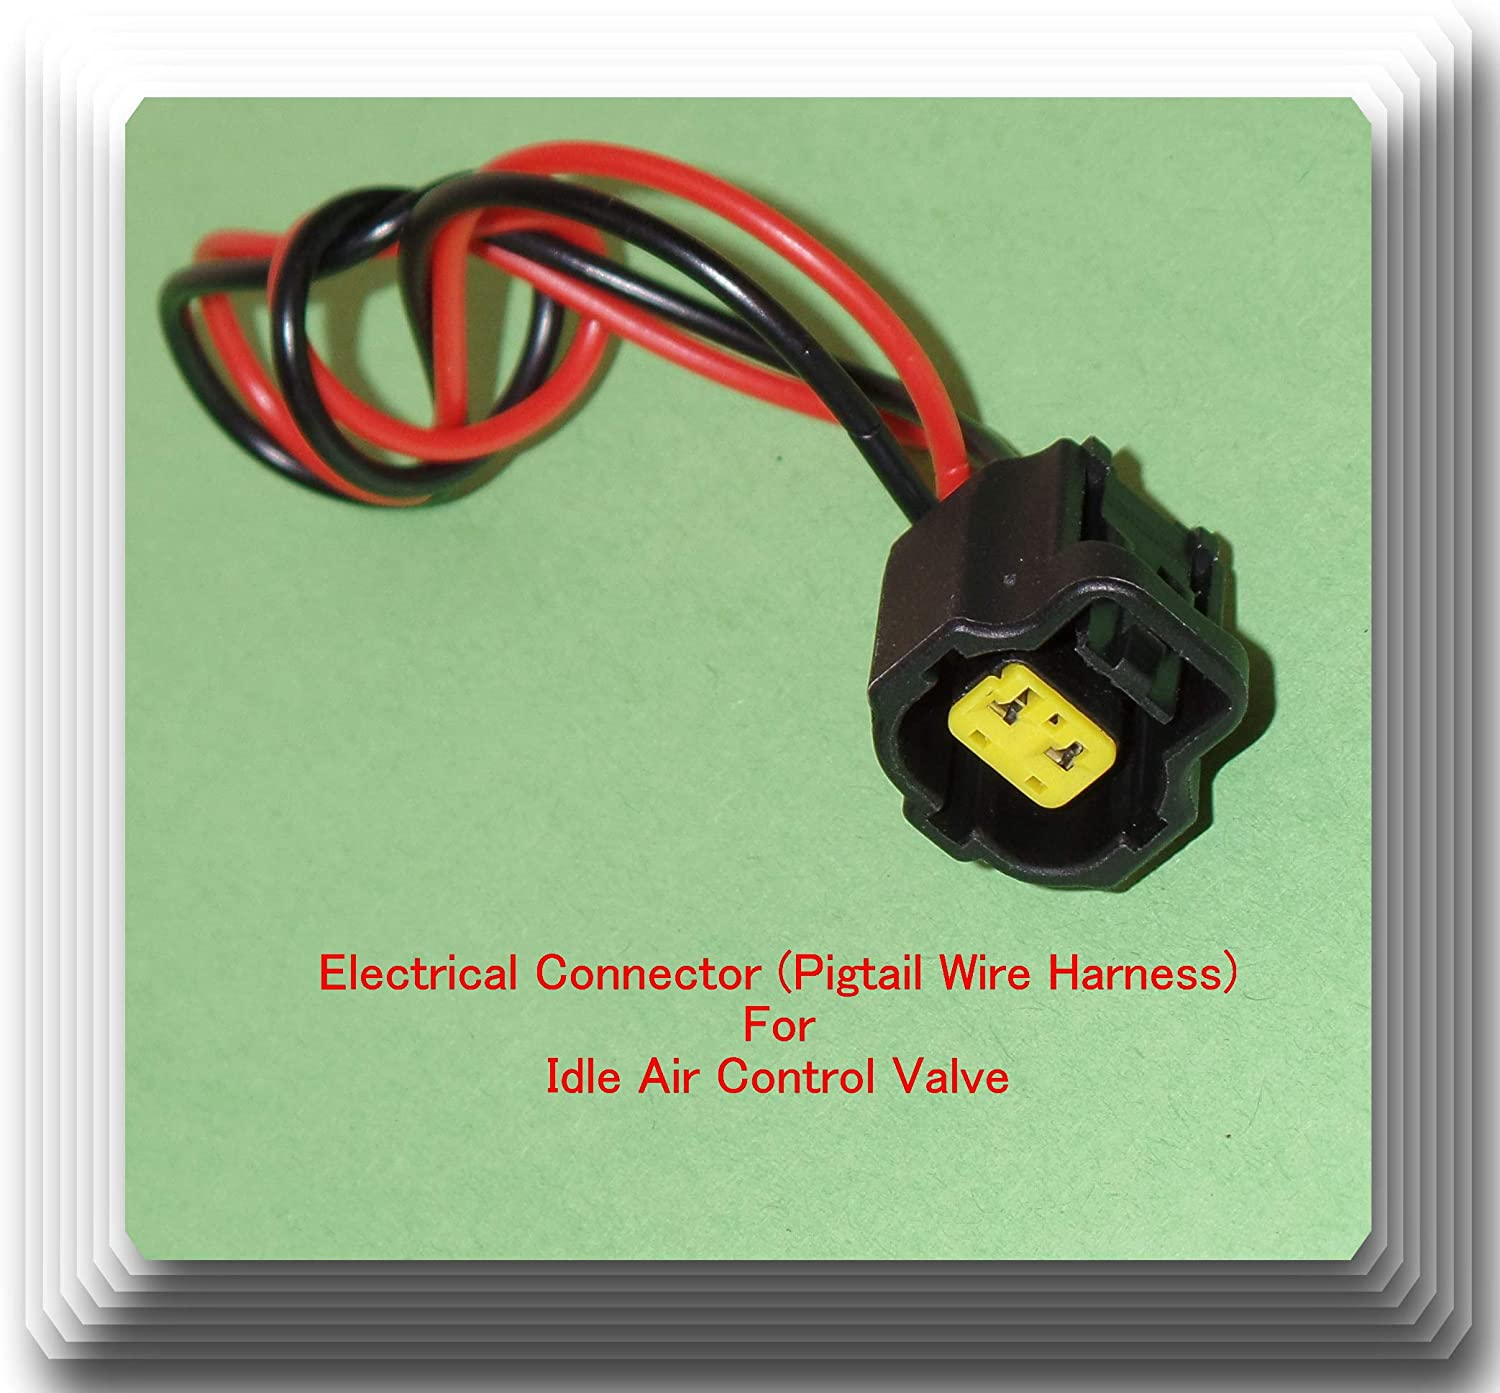 1F2220660A Electrical Connector free of Idle Control Fits: Air Valve Colorado Springs Mall